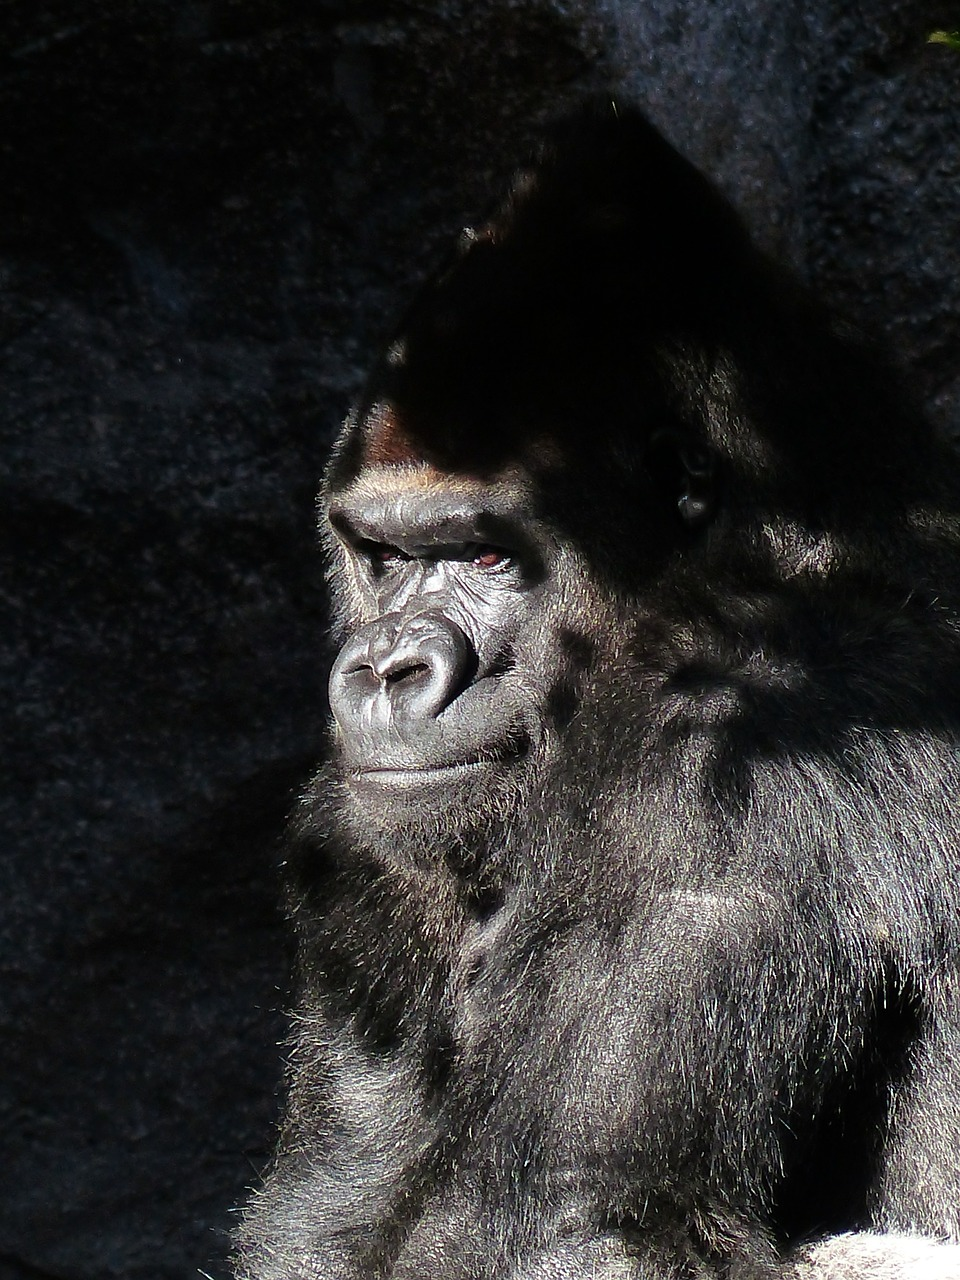 gorilla monkey view free photo